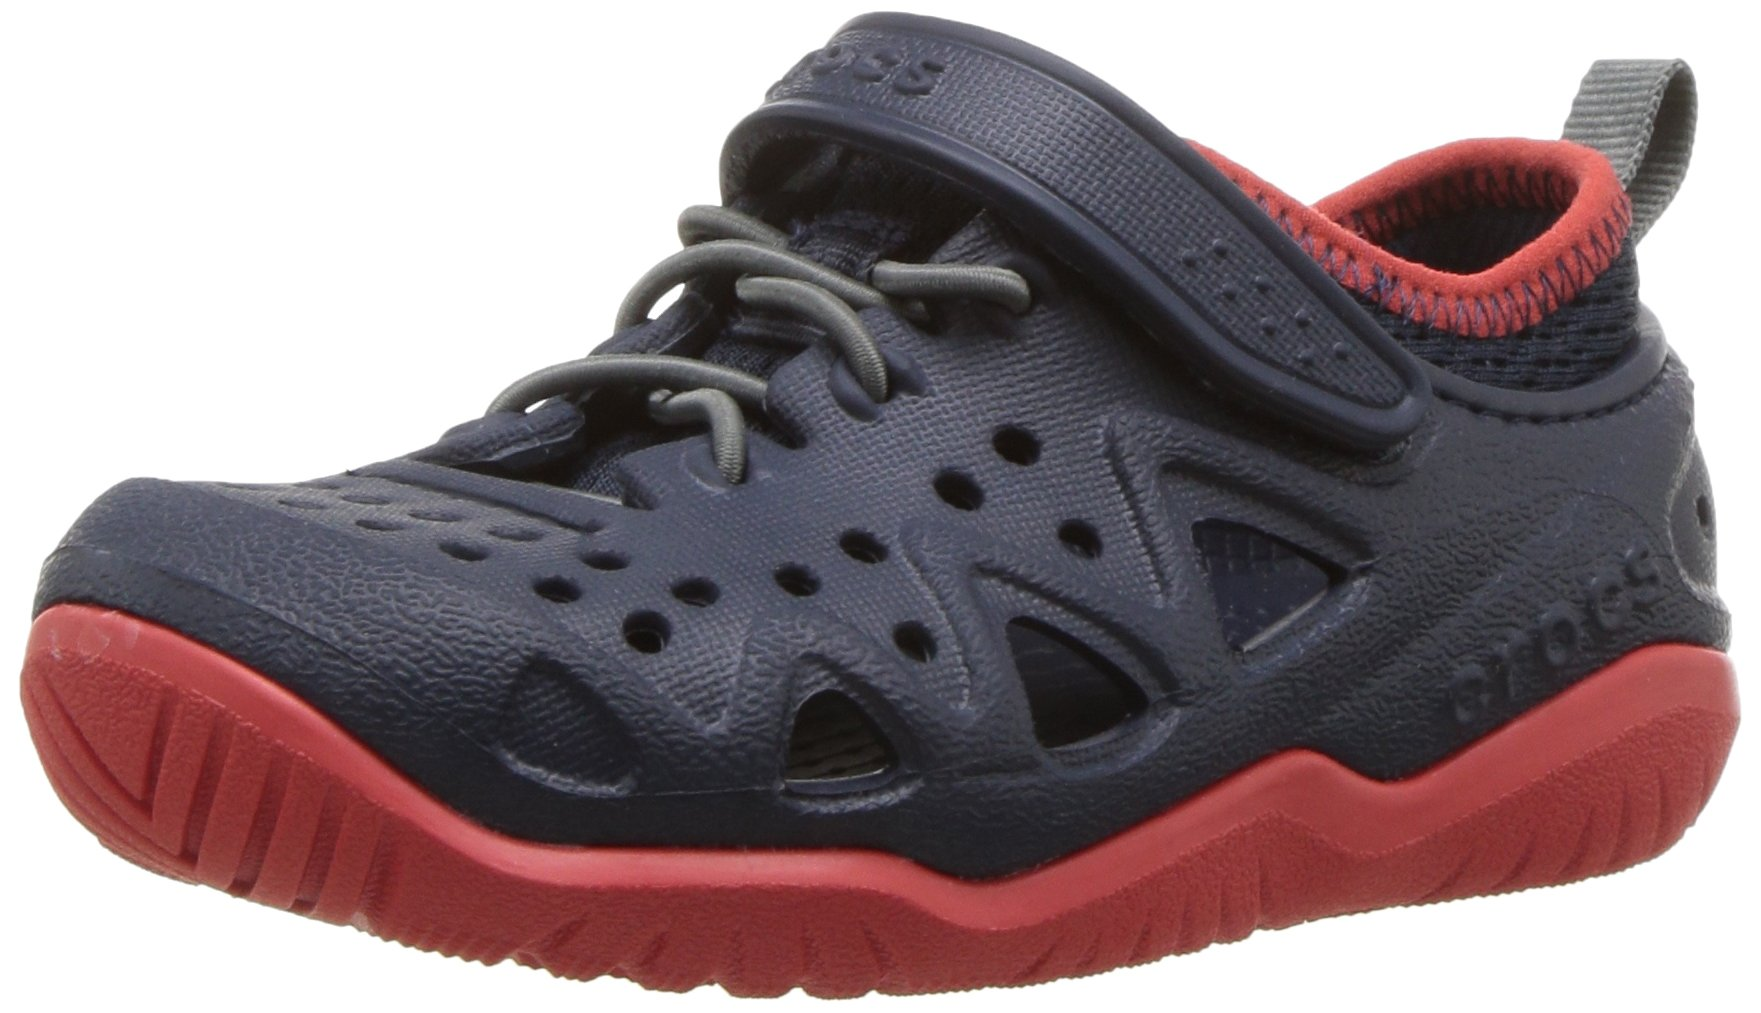 Crocs Kids' Swiftwater Play Shoe, Navy, 7 M US Toddler by Crocs